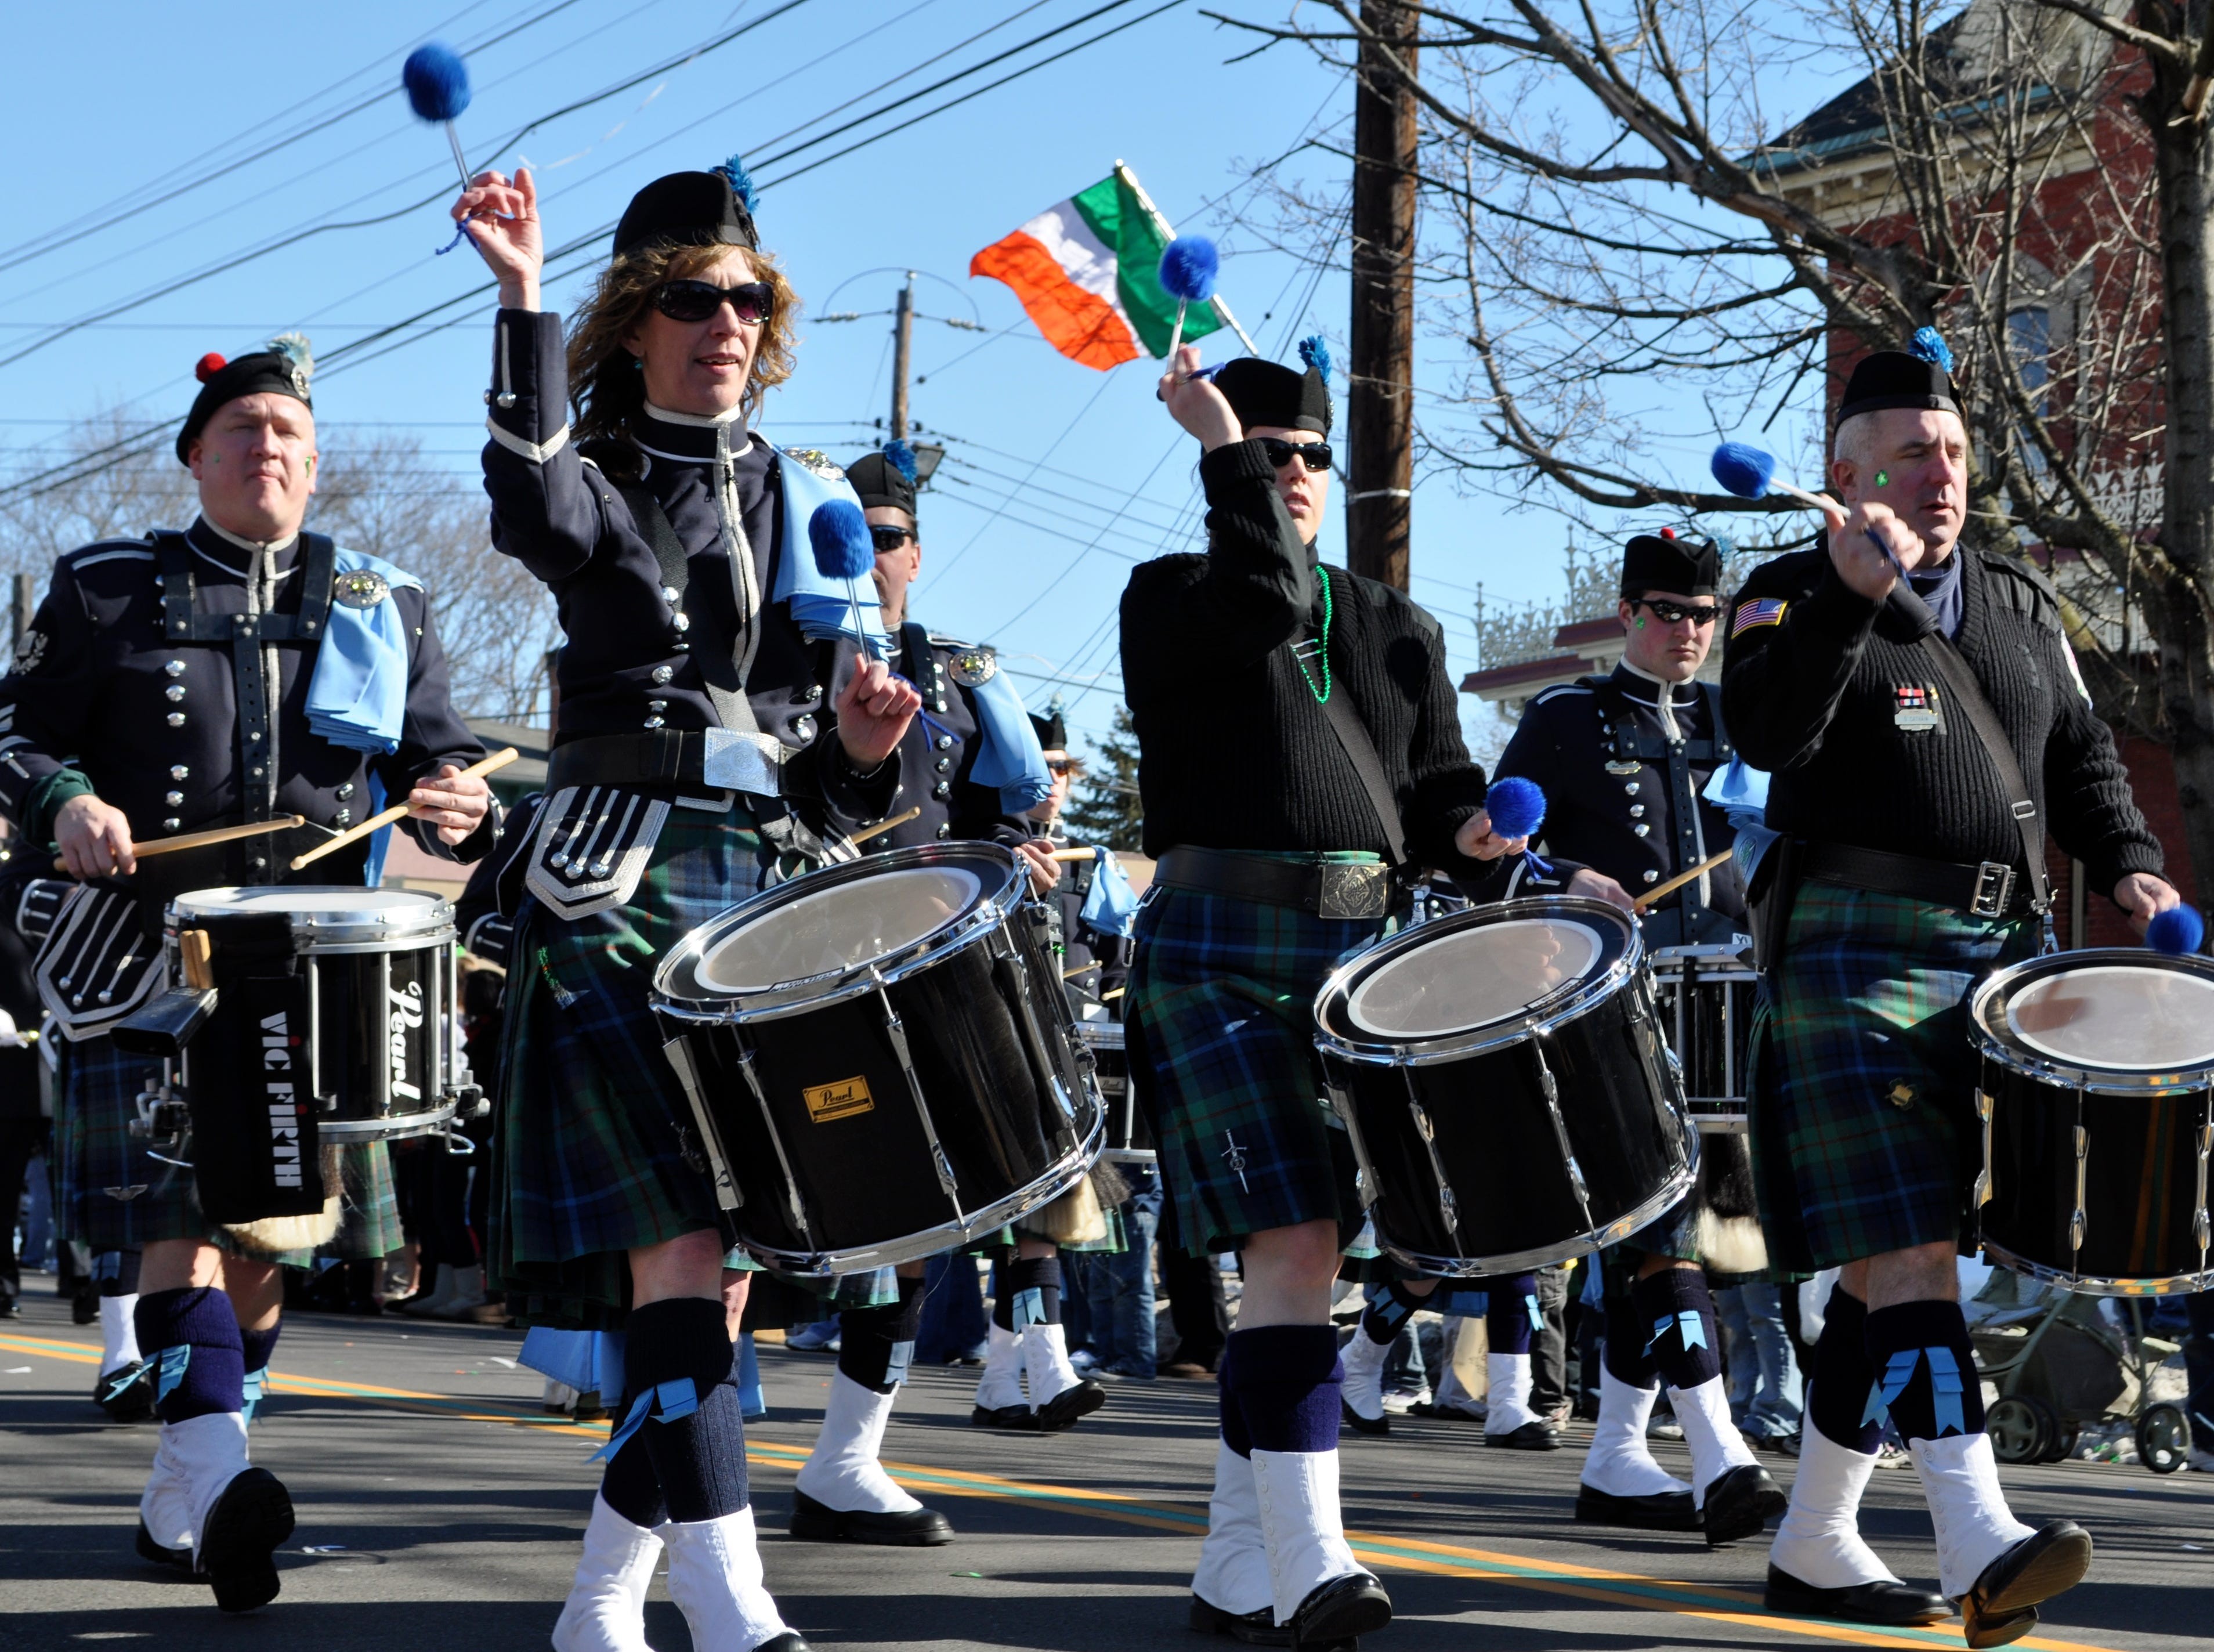 2010: The Edward P. Maloney Memorial Pipe band performs Saturday at the St. Patrick's Day parade in downtown Binghamton.